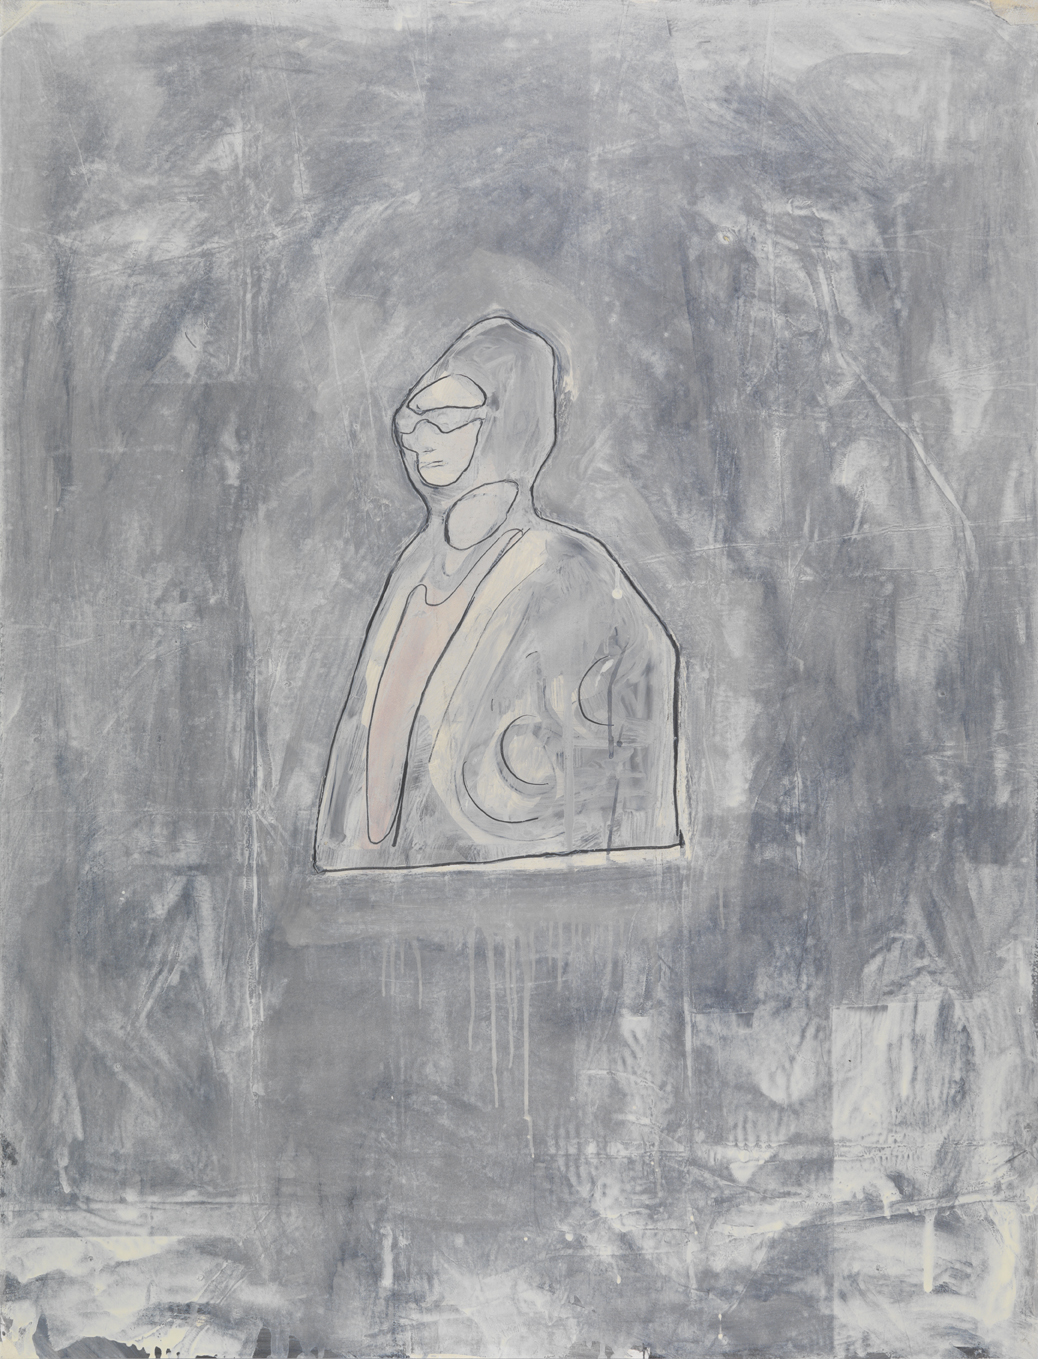 Oum Kalsoum   1981  graphite and oil-based enamel on paper  46 x 35 in / 116.8 x 88.9 cm